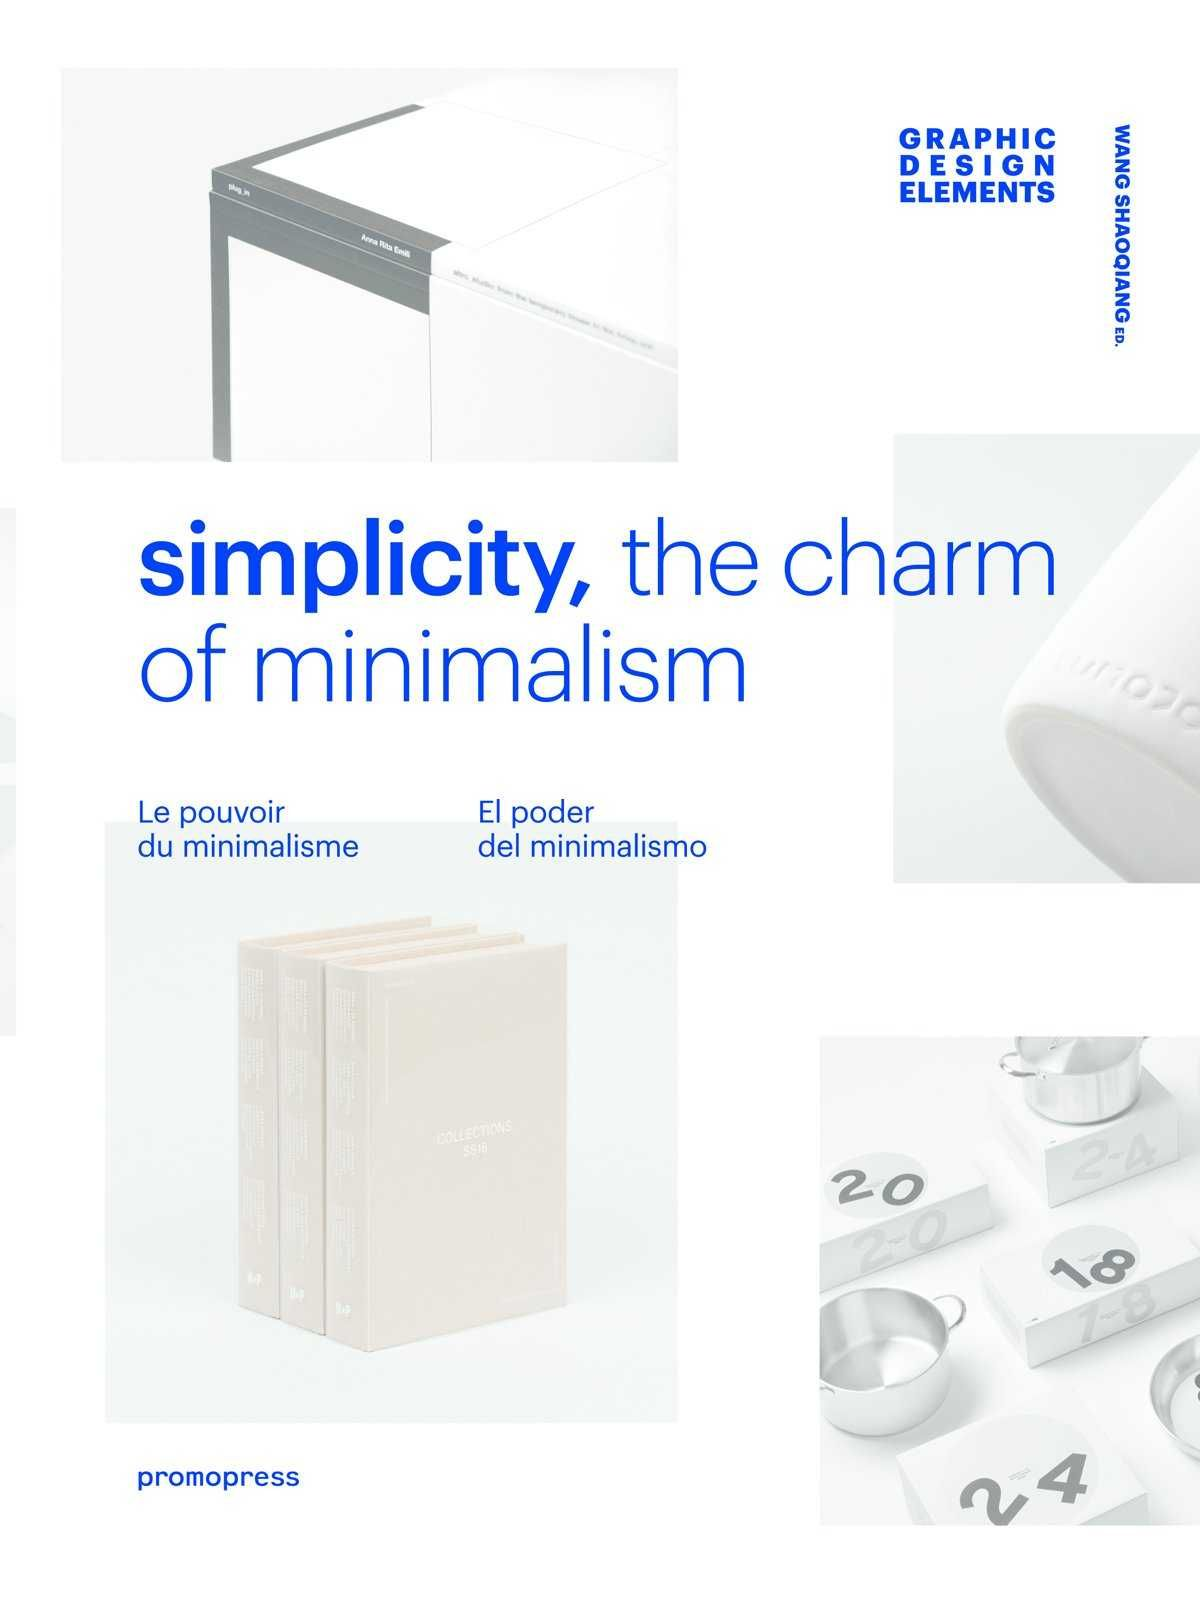 SIMPLICITY: THE CHARM OF MINIMALISM